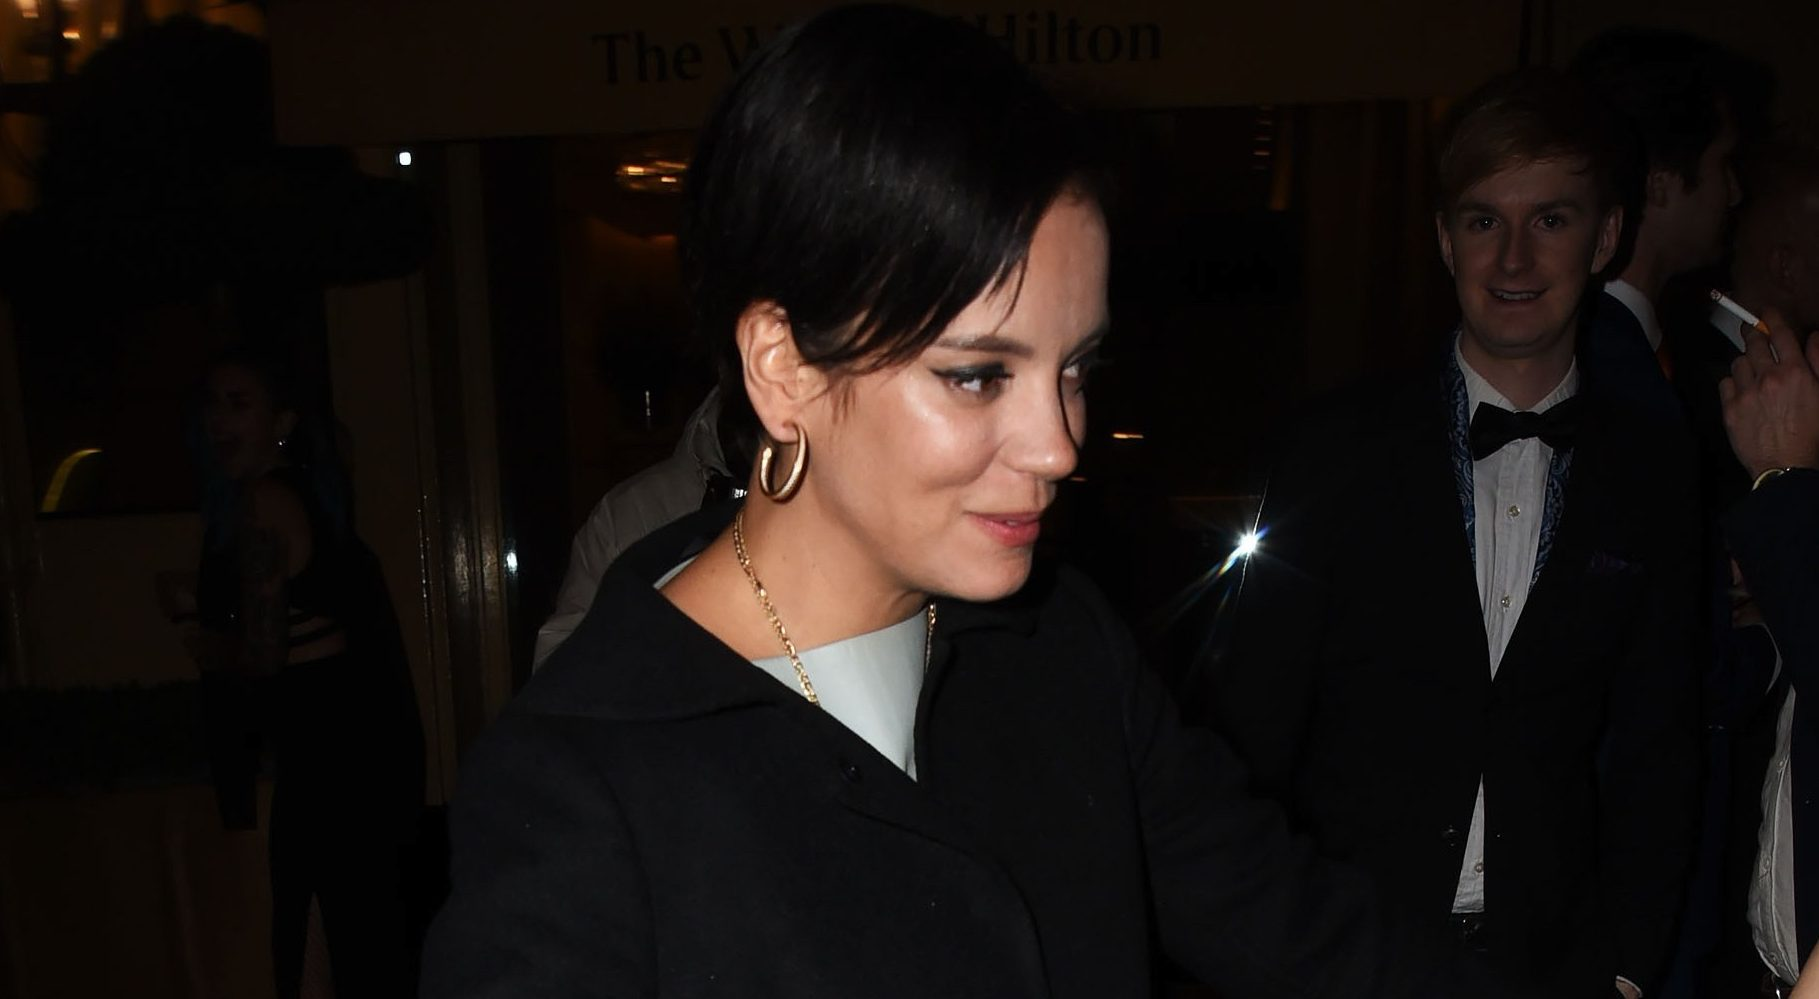 Lily Allen left panicked after suffering major Christmas blunder